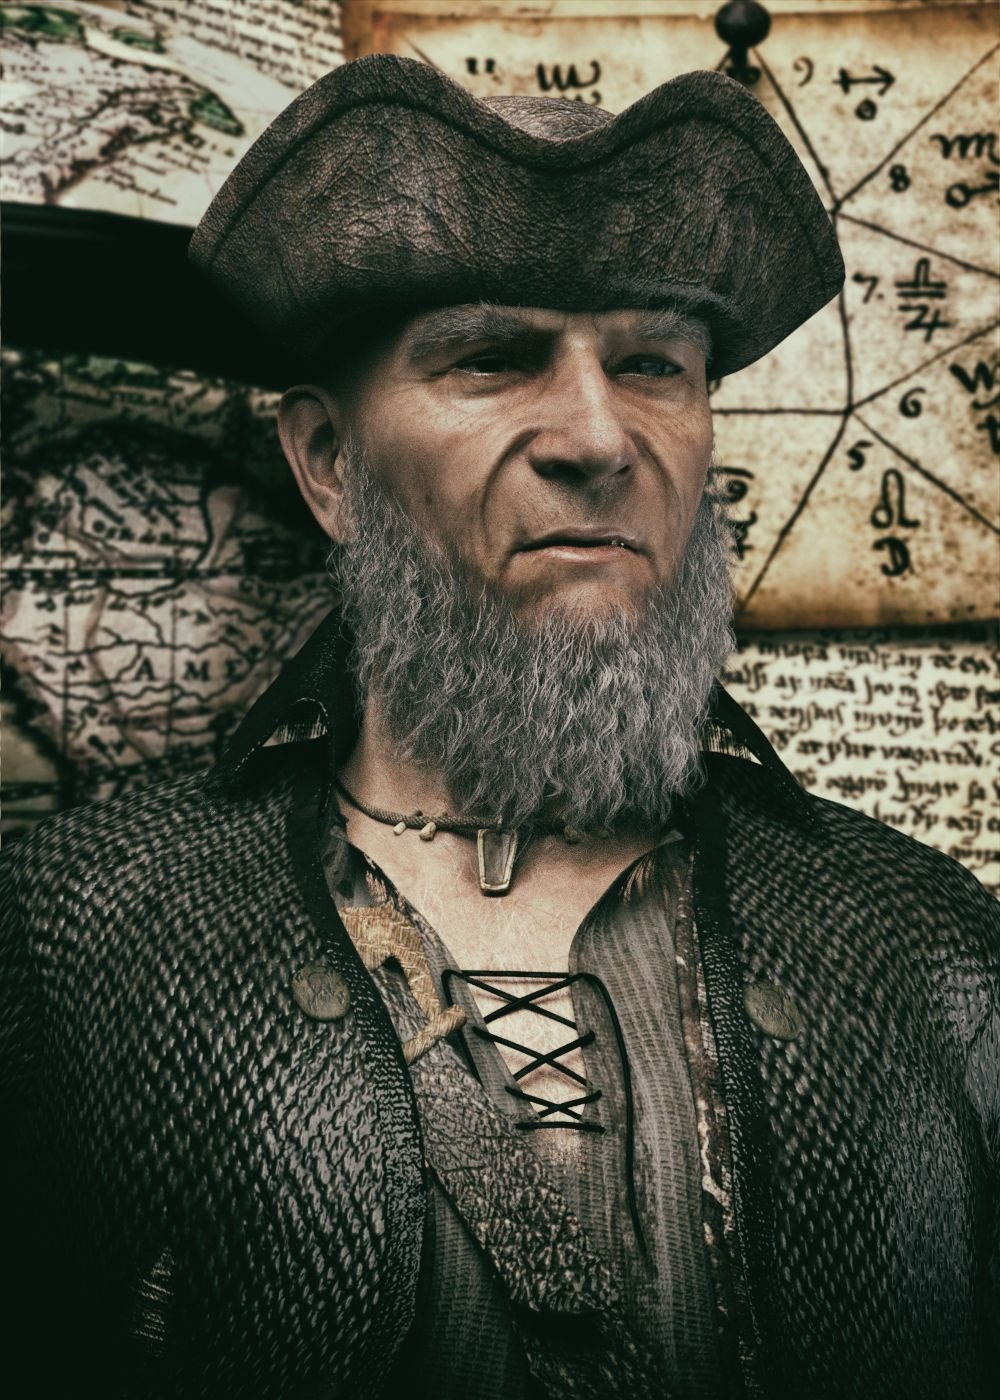 Portrait of an old Pirate by Krid